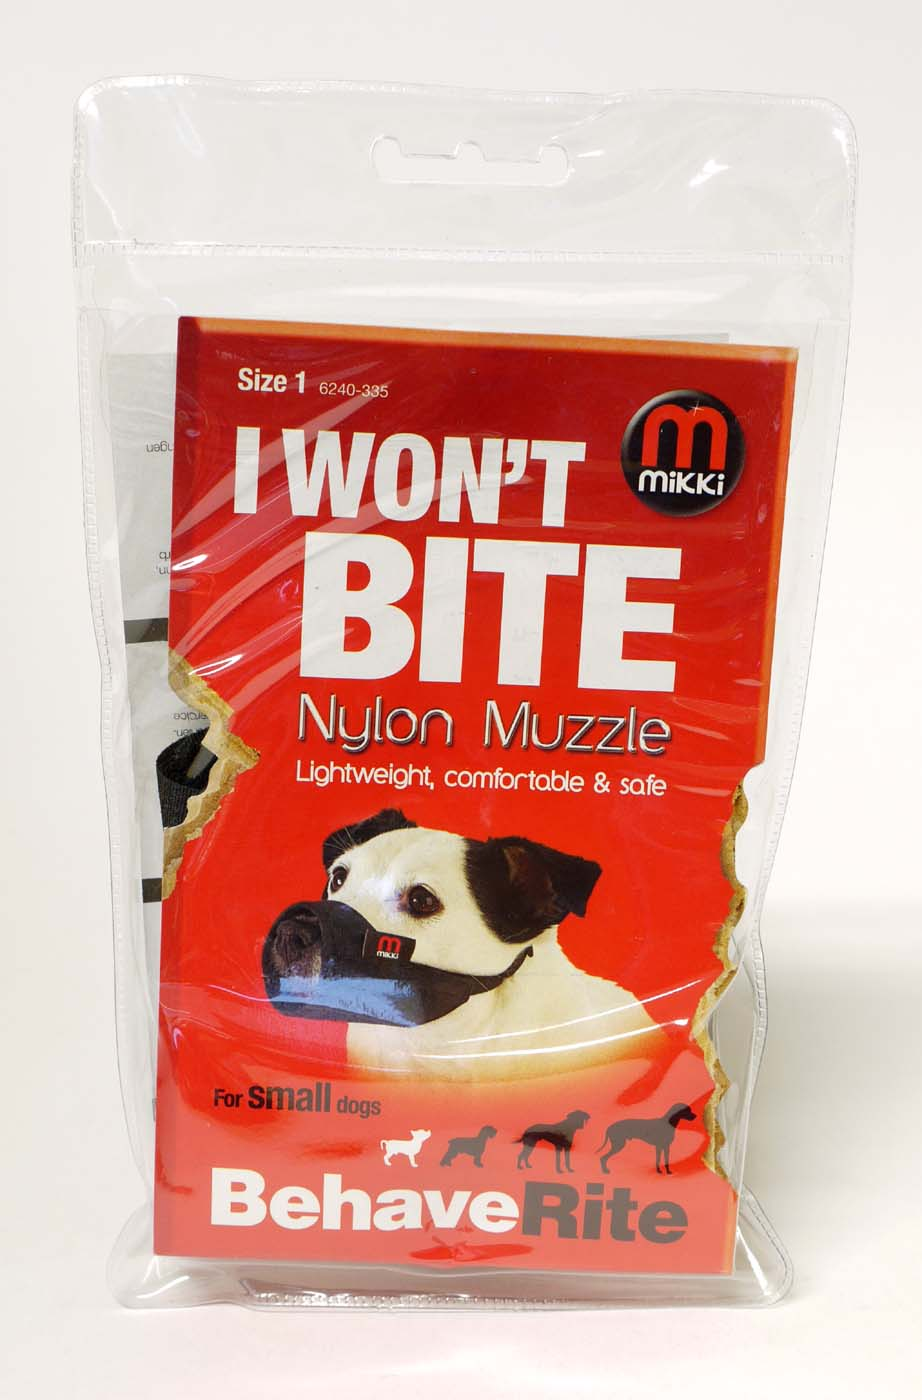 Mikki Nylon Muzzle for Dogs